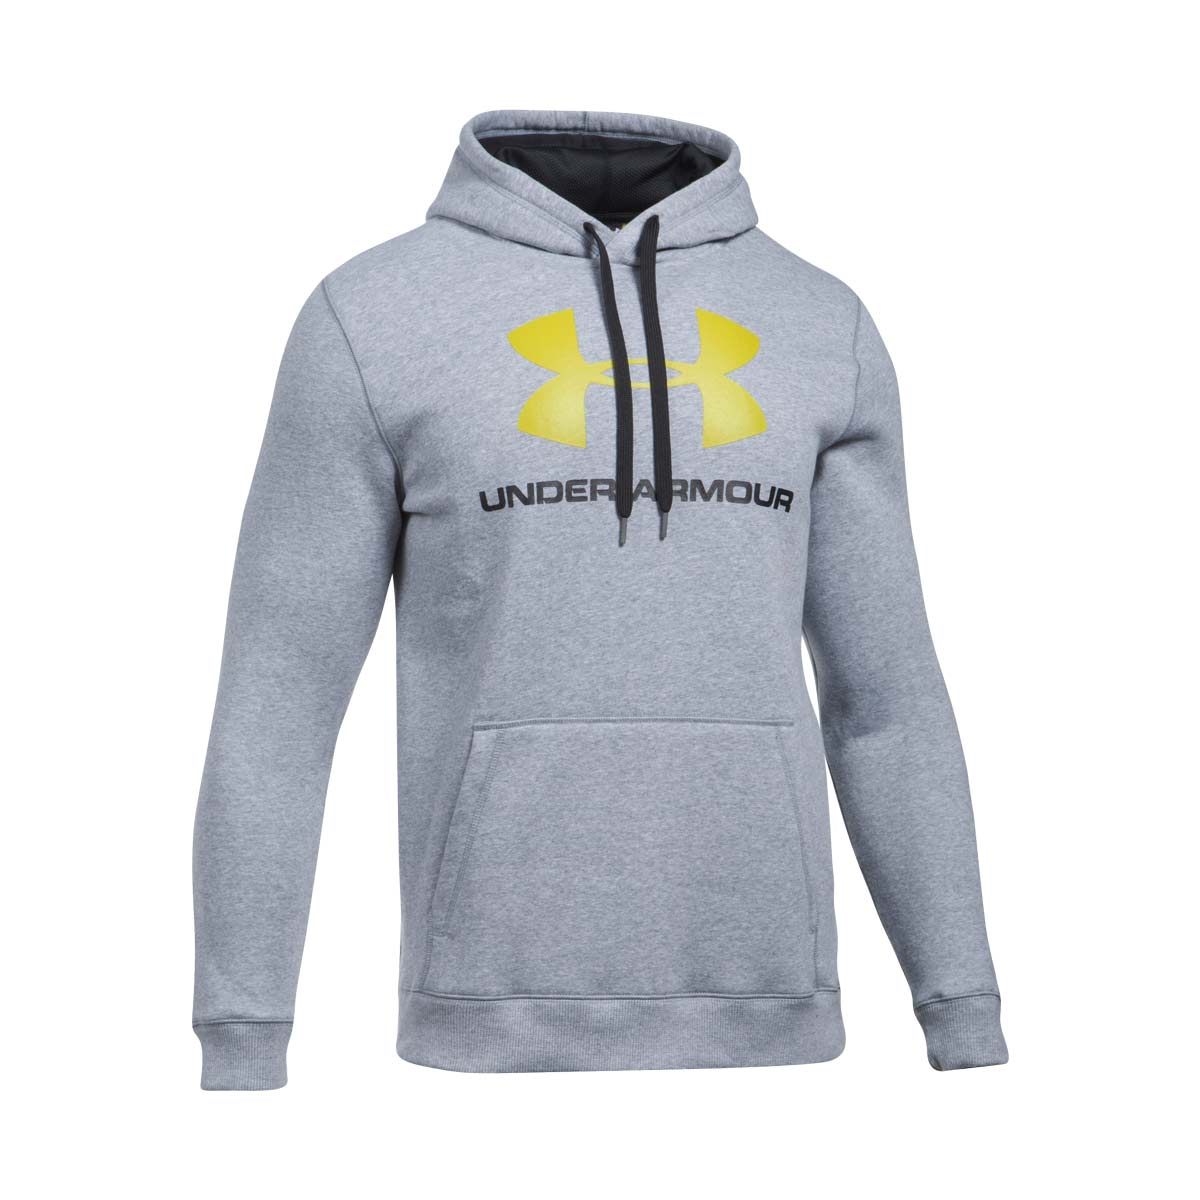 UNDER ARMOUR Felpa con cappuccio UA Rival Fleece Fitted Full Zip da uomo